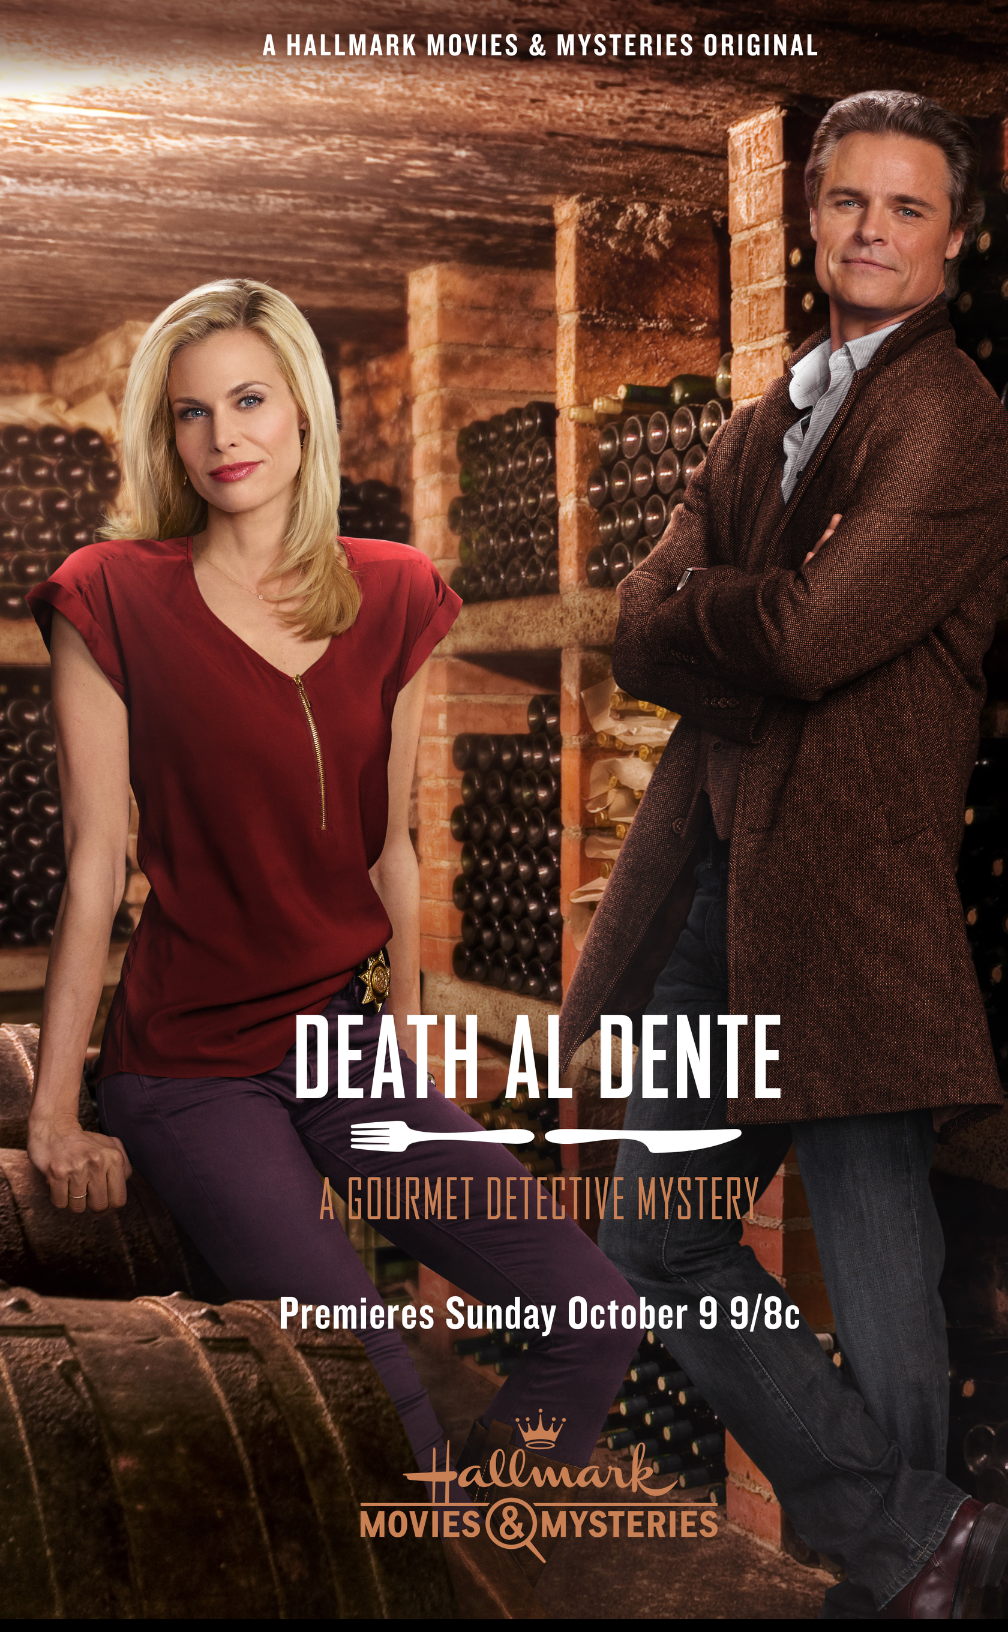 Hallmark Movies And Mysteries.My Devotional Thoughts Death Al Dente A Gourmet Detective